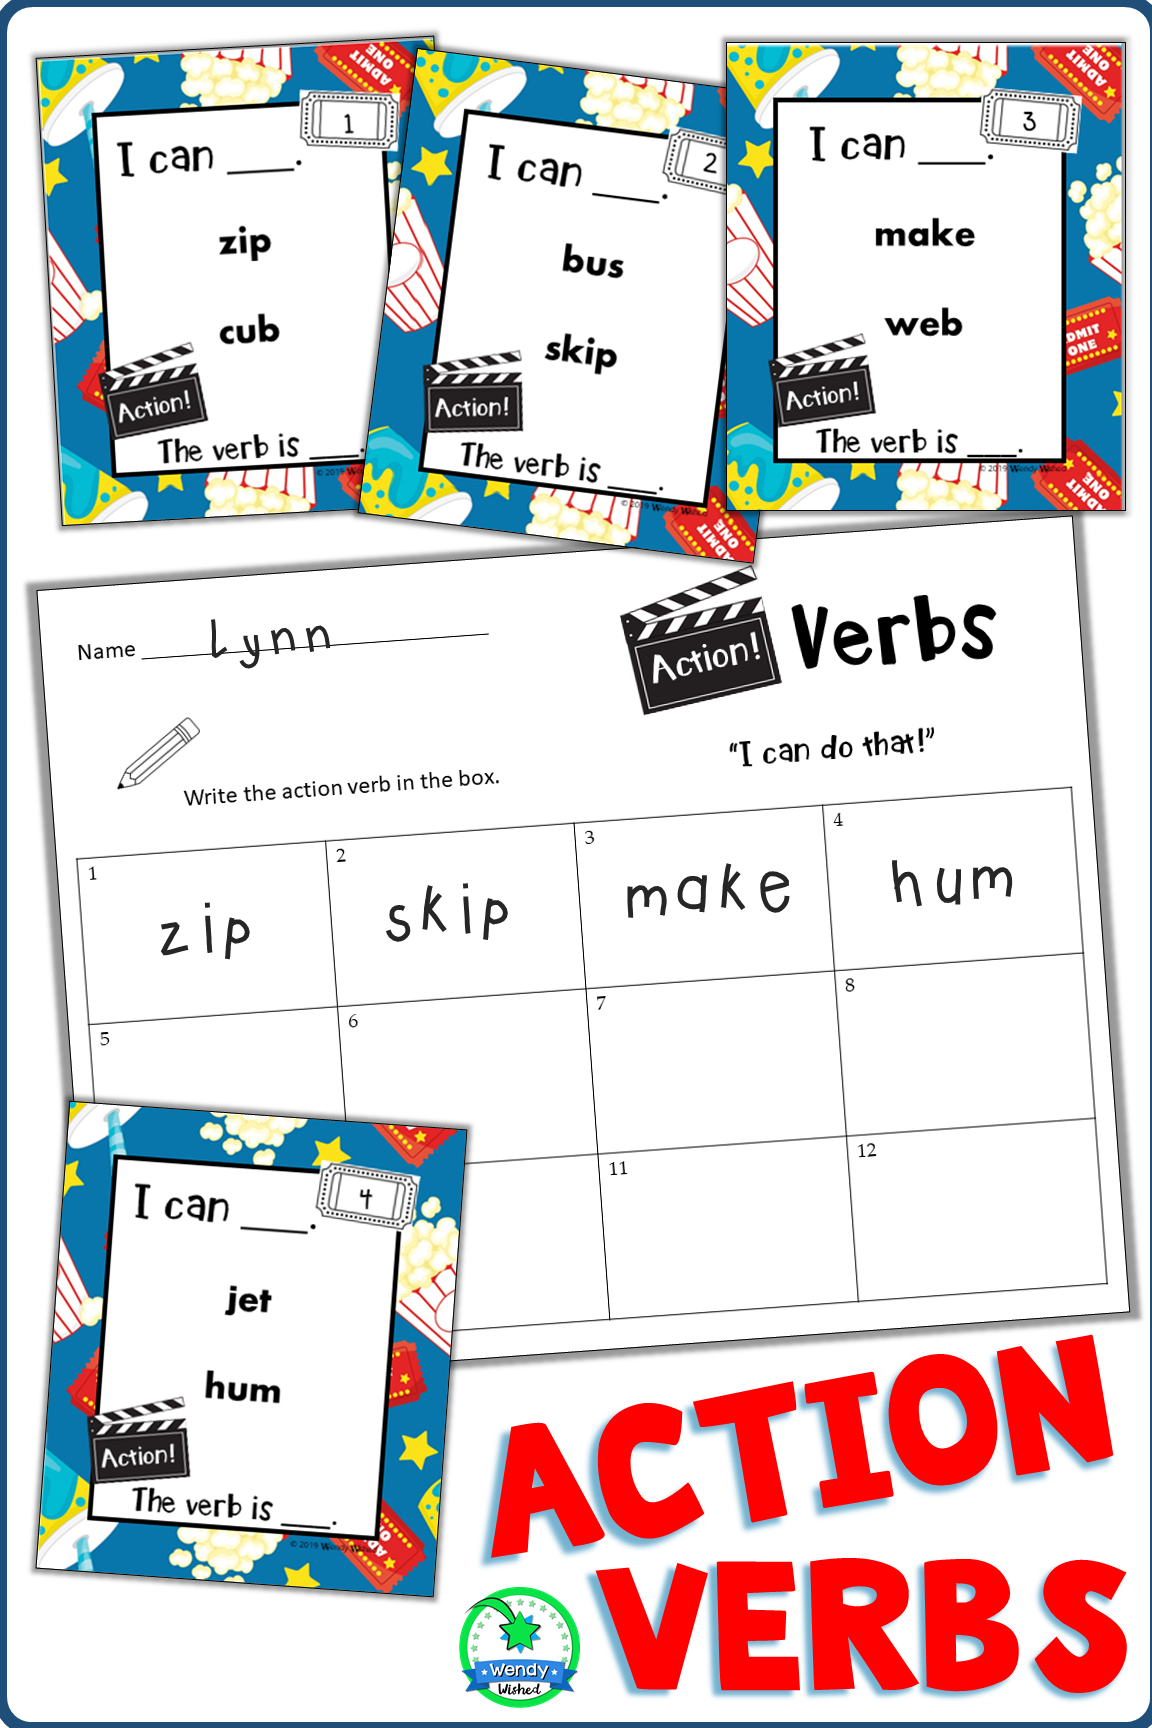 Action Verb Flashcards In